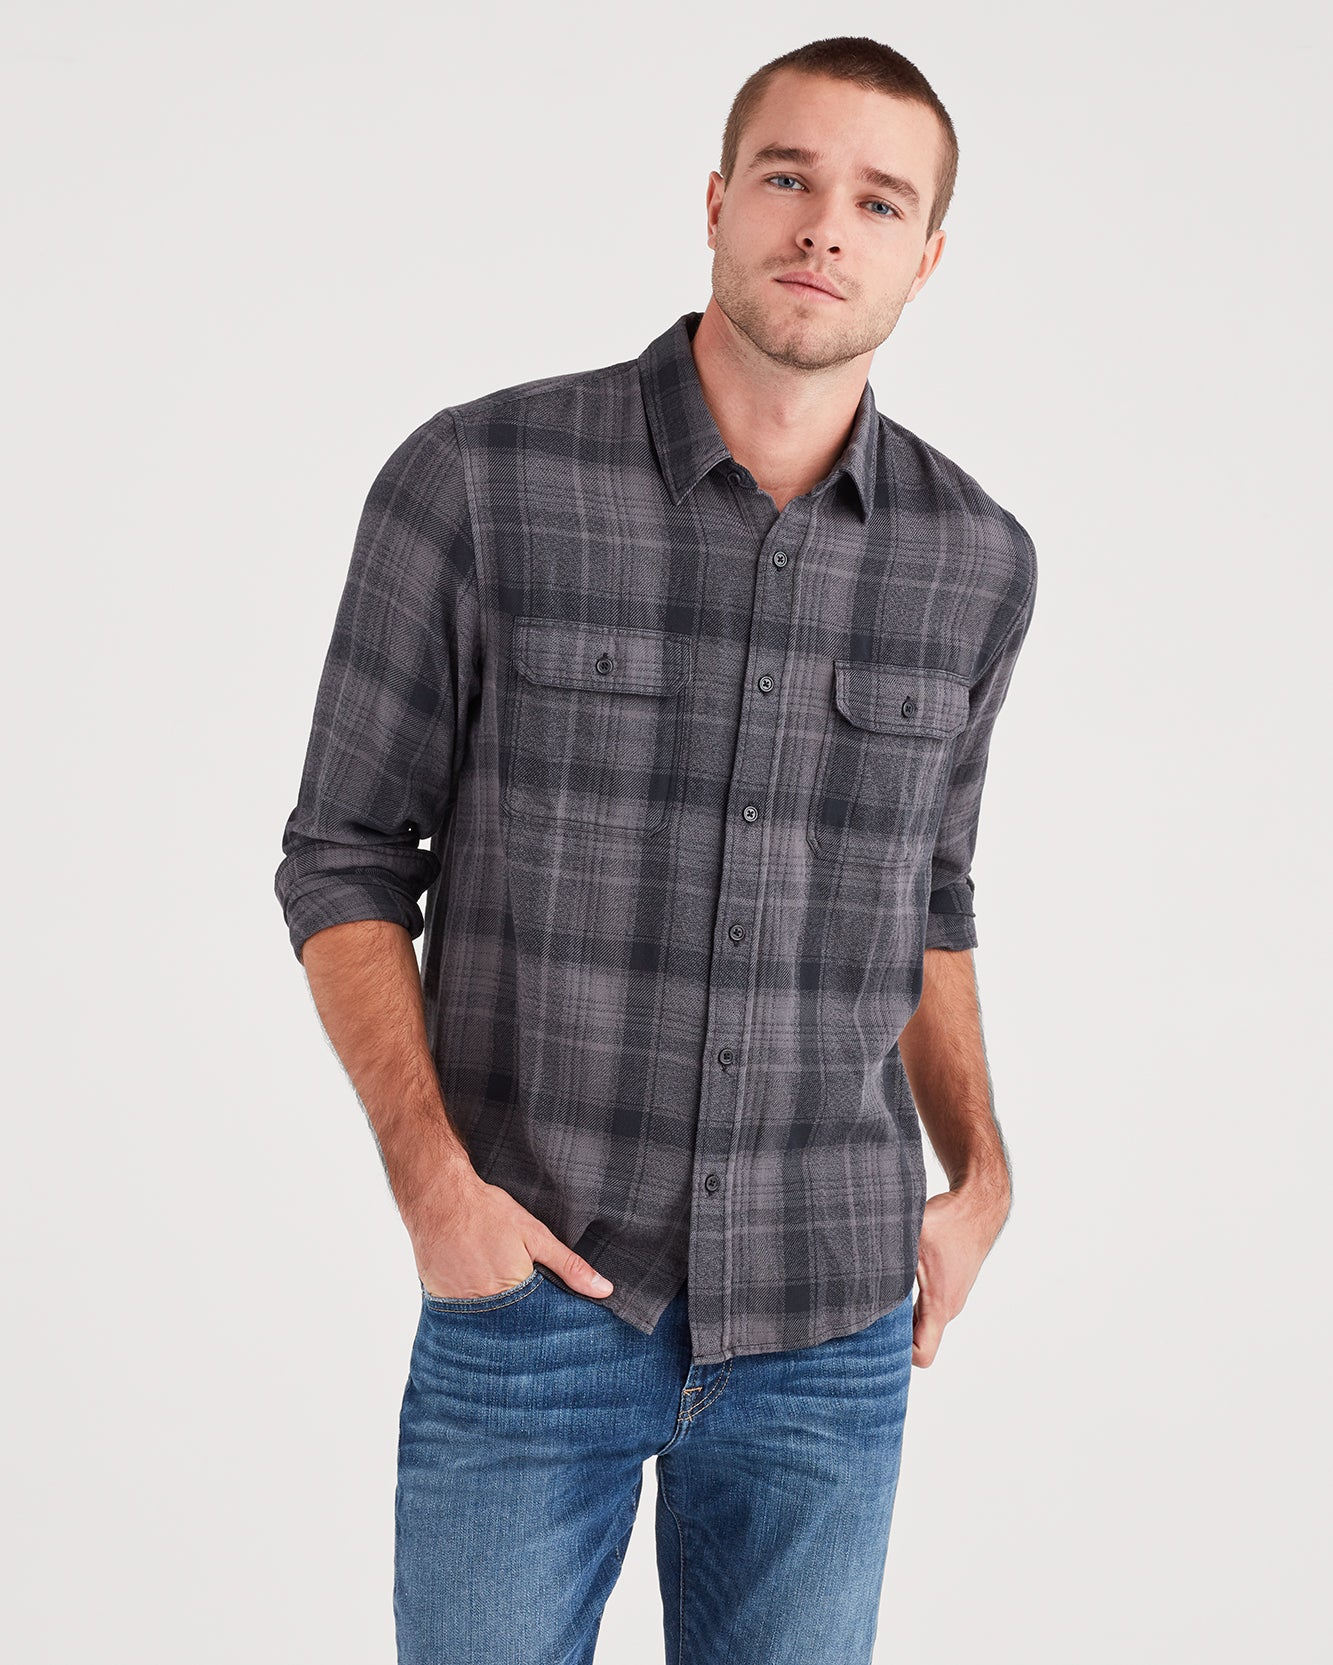 Image of Long Sleeve Plaid Utility Shirt in Grey